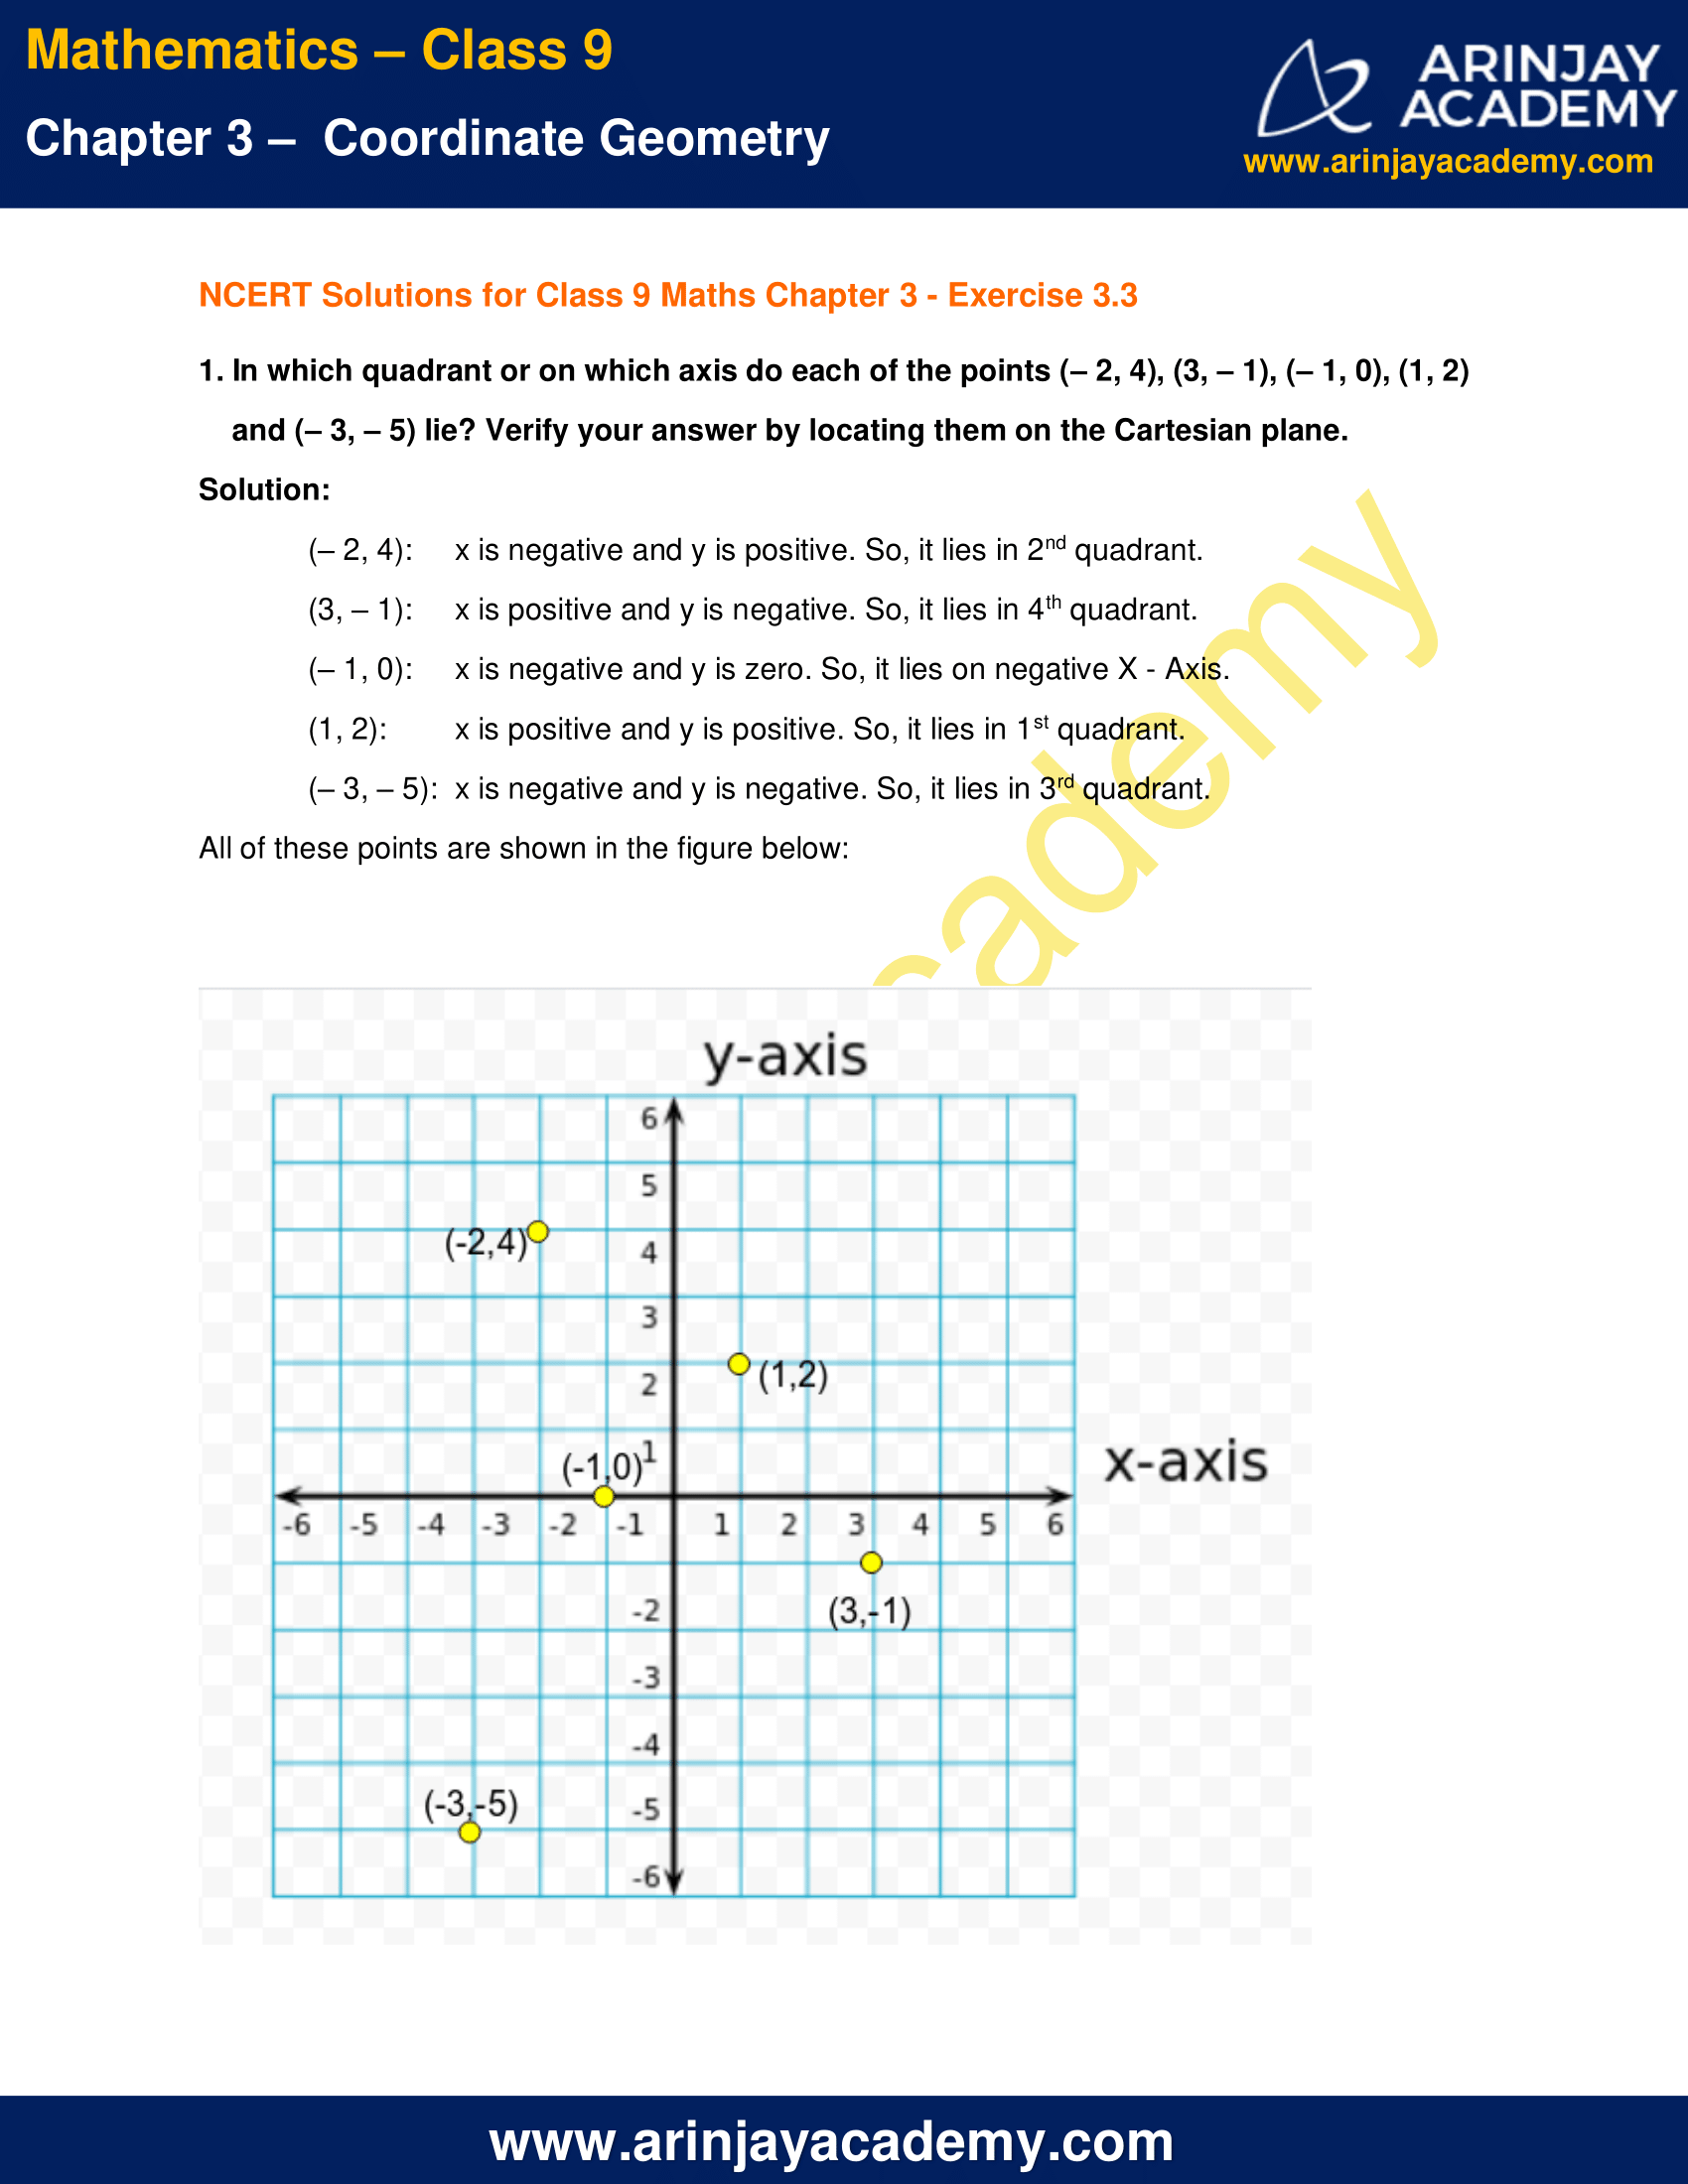 NCERT Solutions for Class 9 Maths Chapter 3 Exercise 3.3 image 1